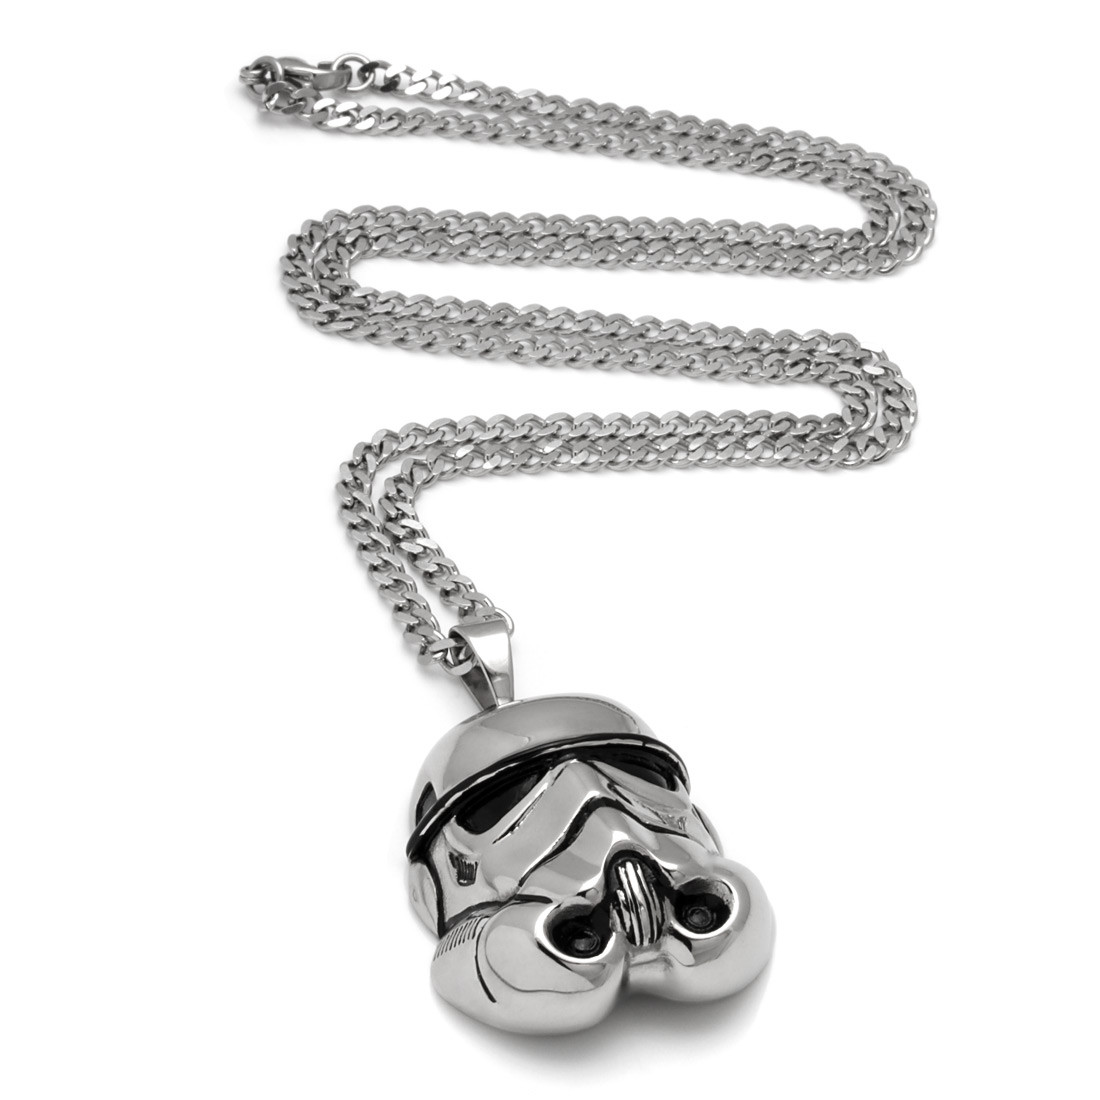 Nkx11347 2 stainless steel stormtrooper necklace